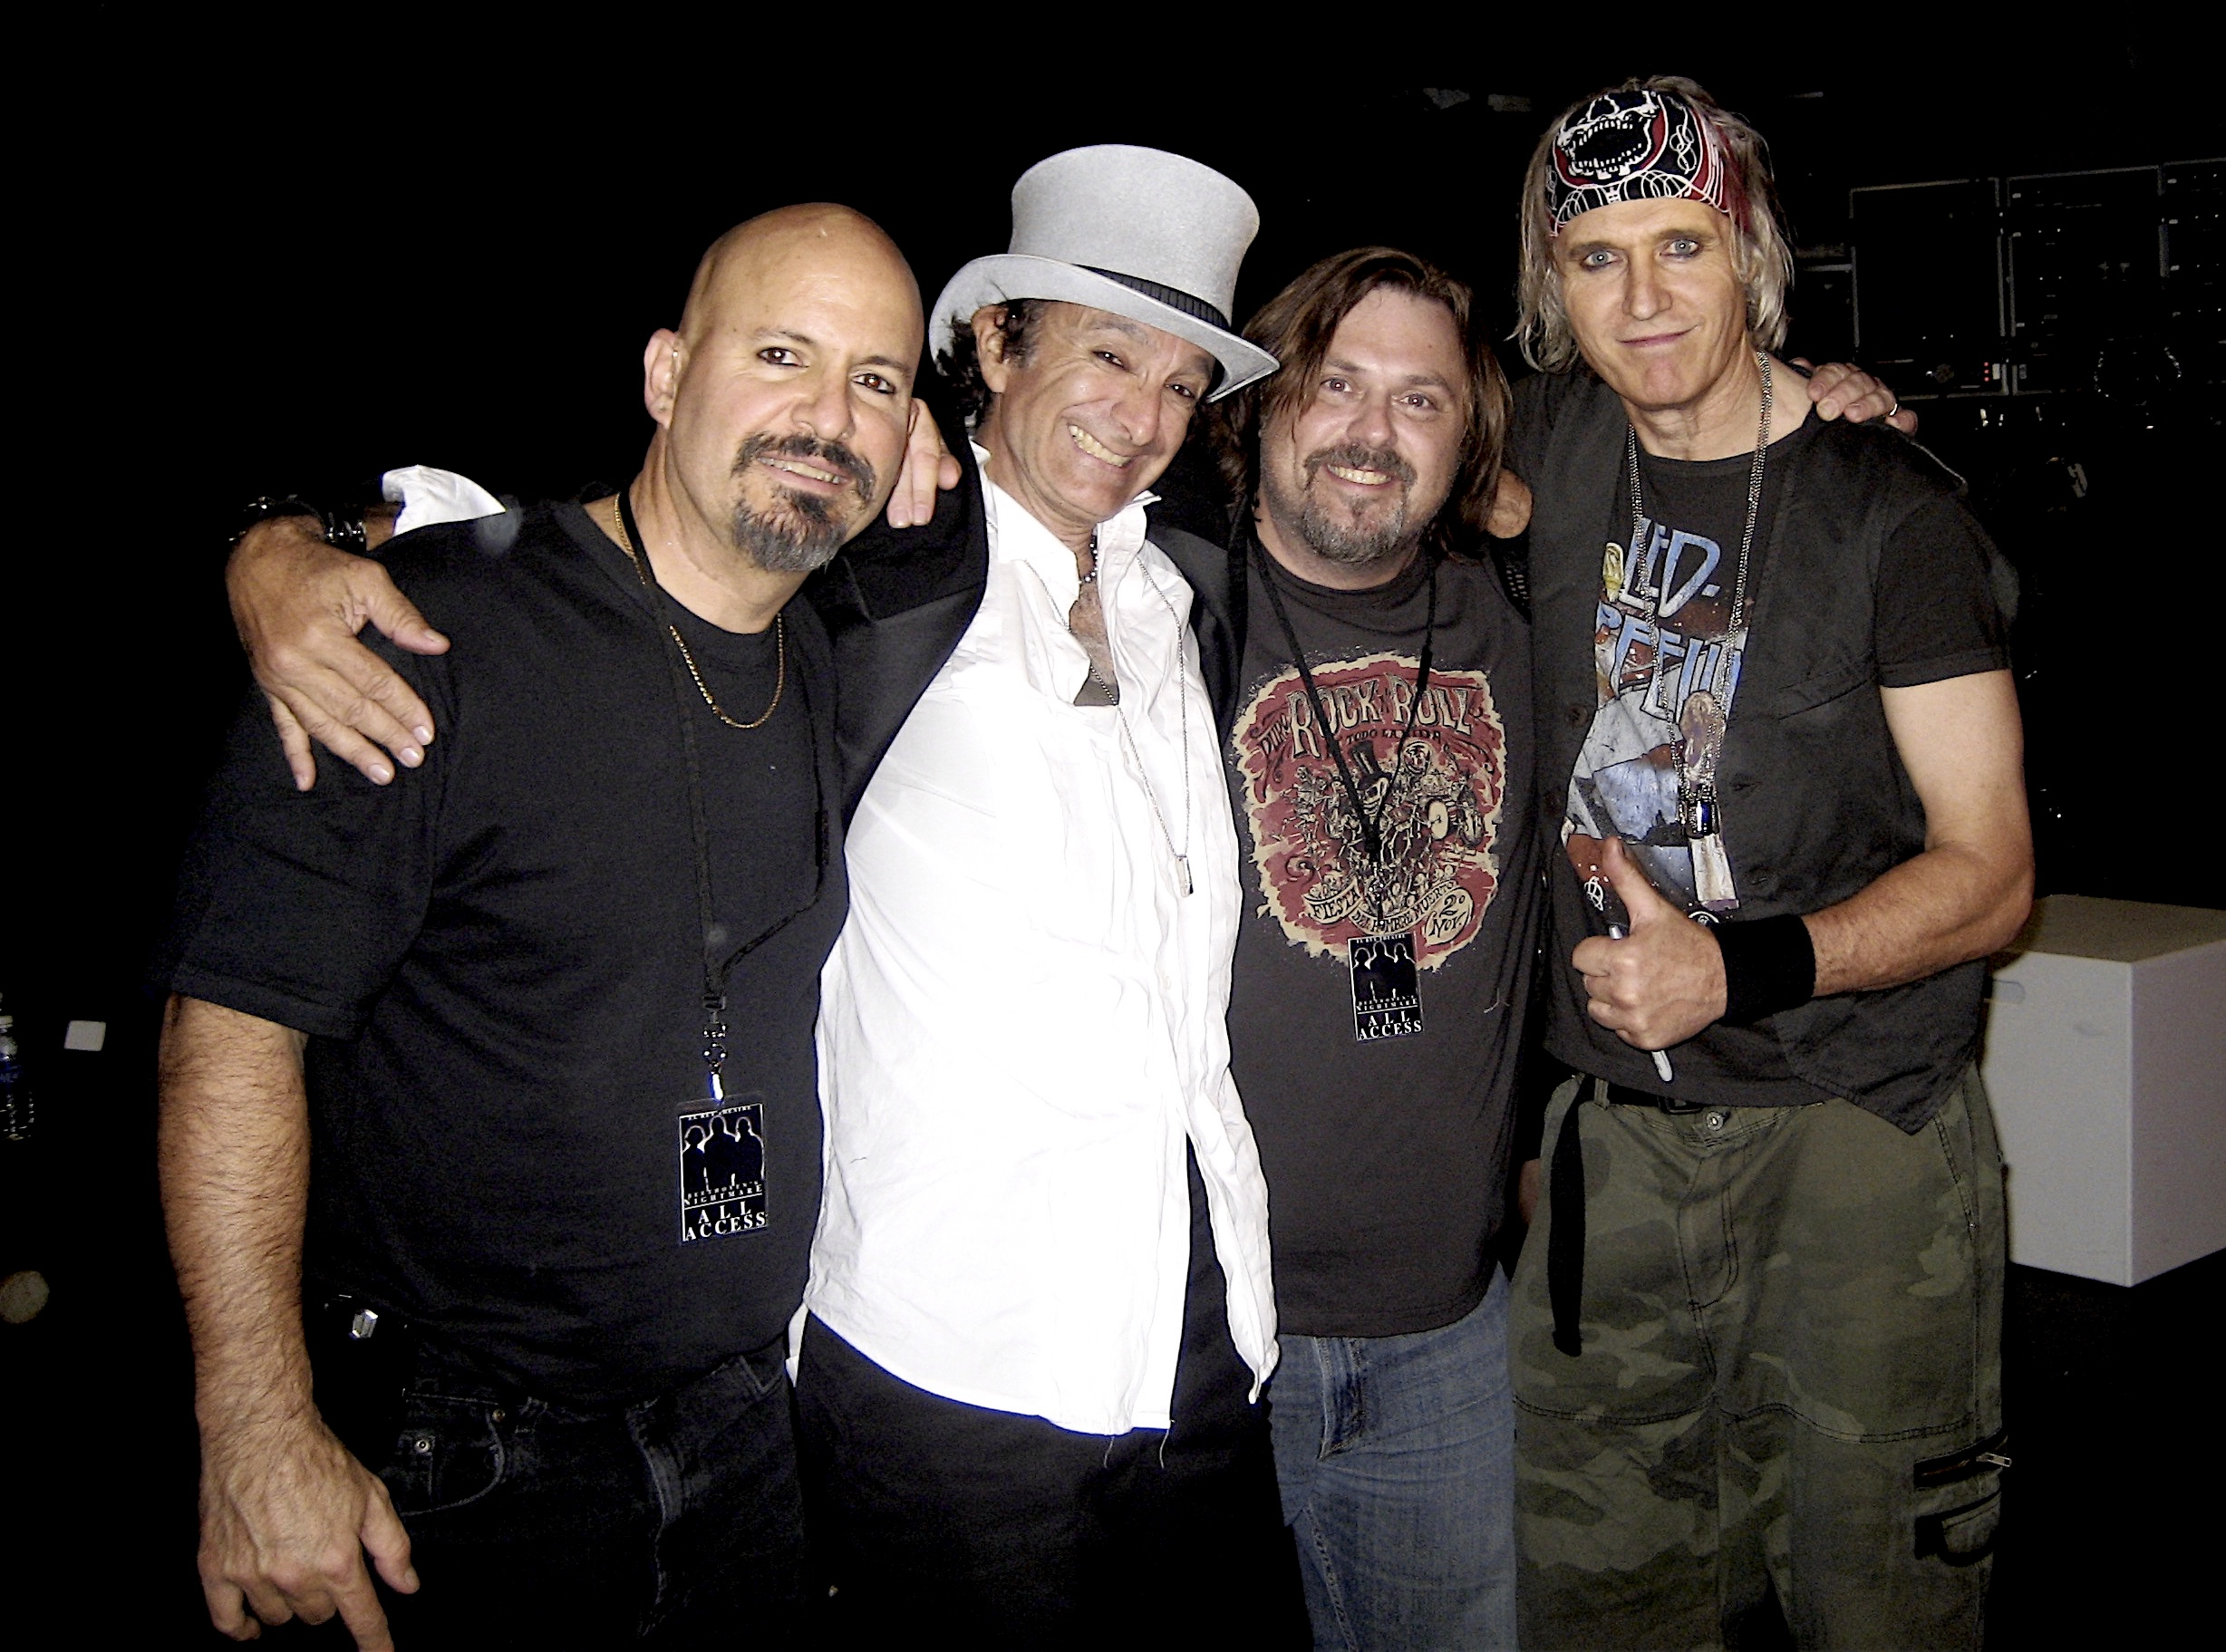 Beethoven's Nightmare members Steve Longo, Ed Chevy, and Bob Hiltermann with producer John Drouillard backstage after GLAD & Sprint Relay's 2007 concert  Beethoven's Nightmare Live At The El Rey , produced by Bob Hiltermann, John Drouillard, and Natalie Drouillard.  Photo by Natalie Drouillard.